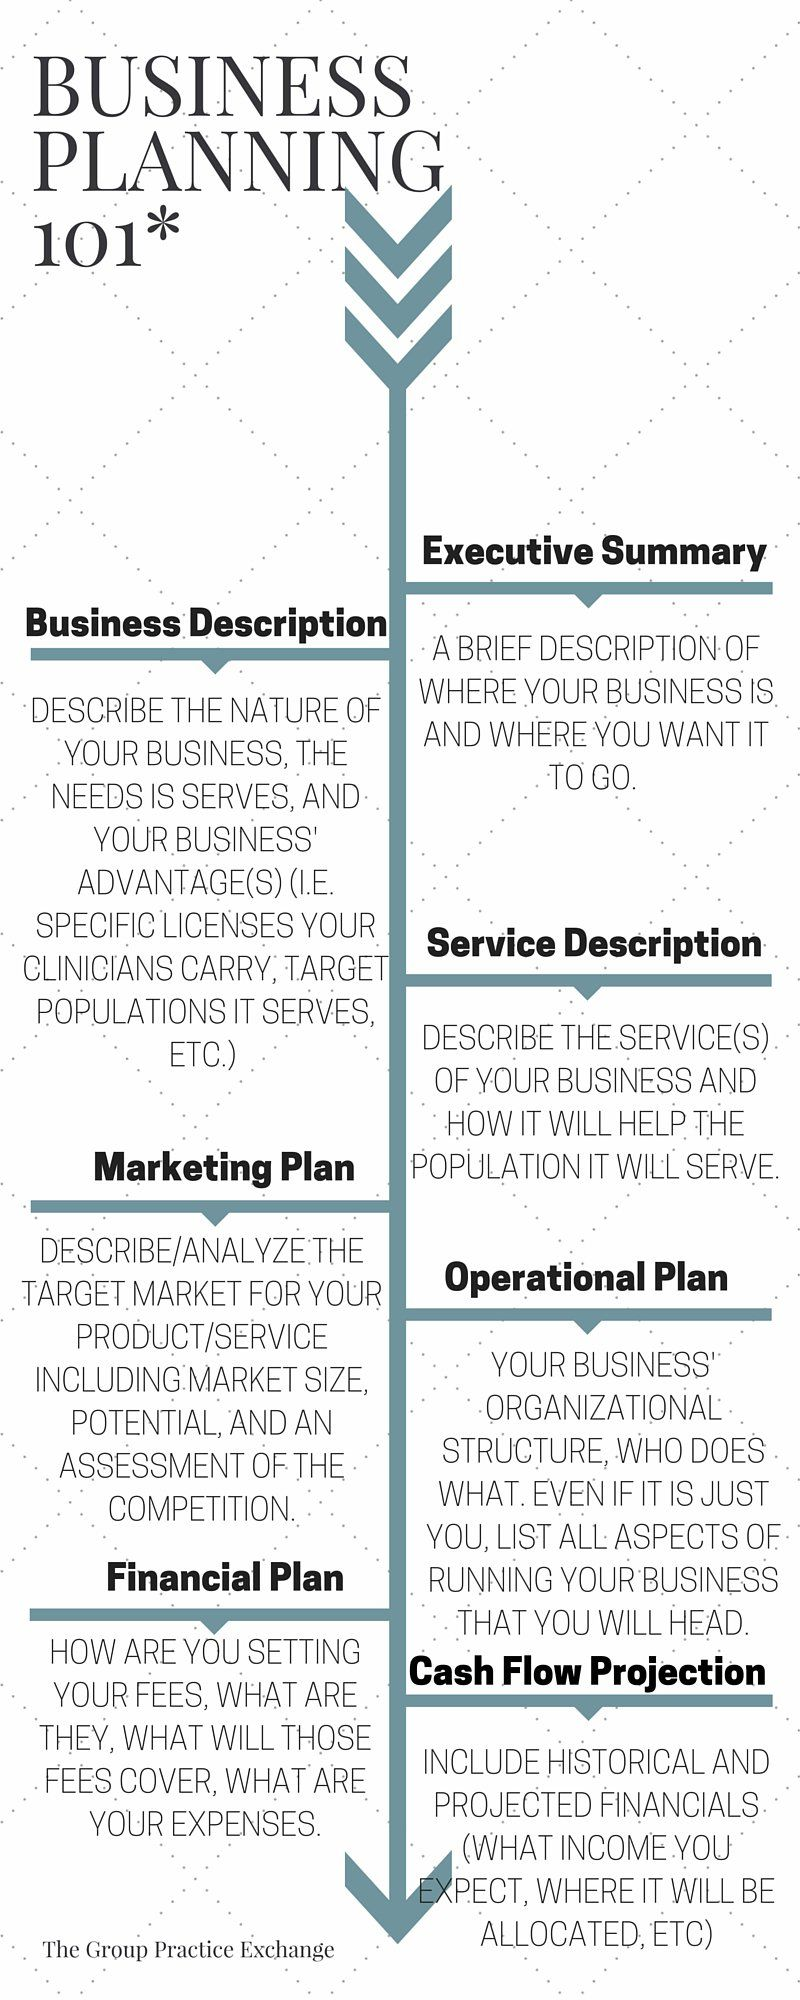 Business Planning Made Easy The Group Practice Exchange